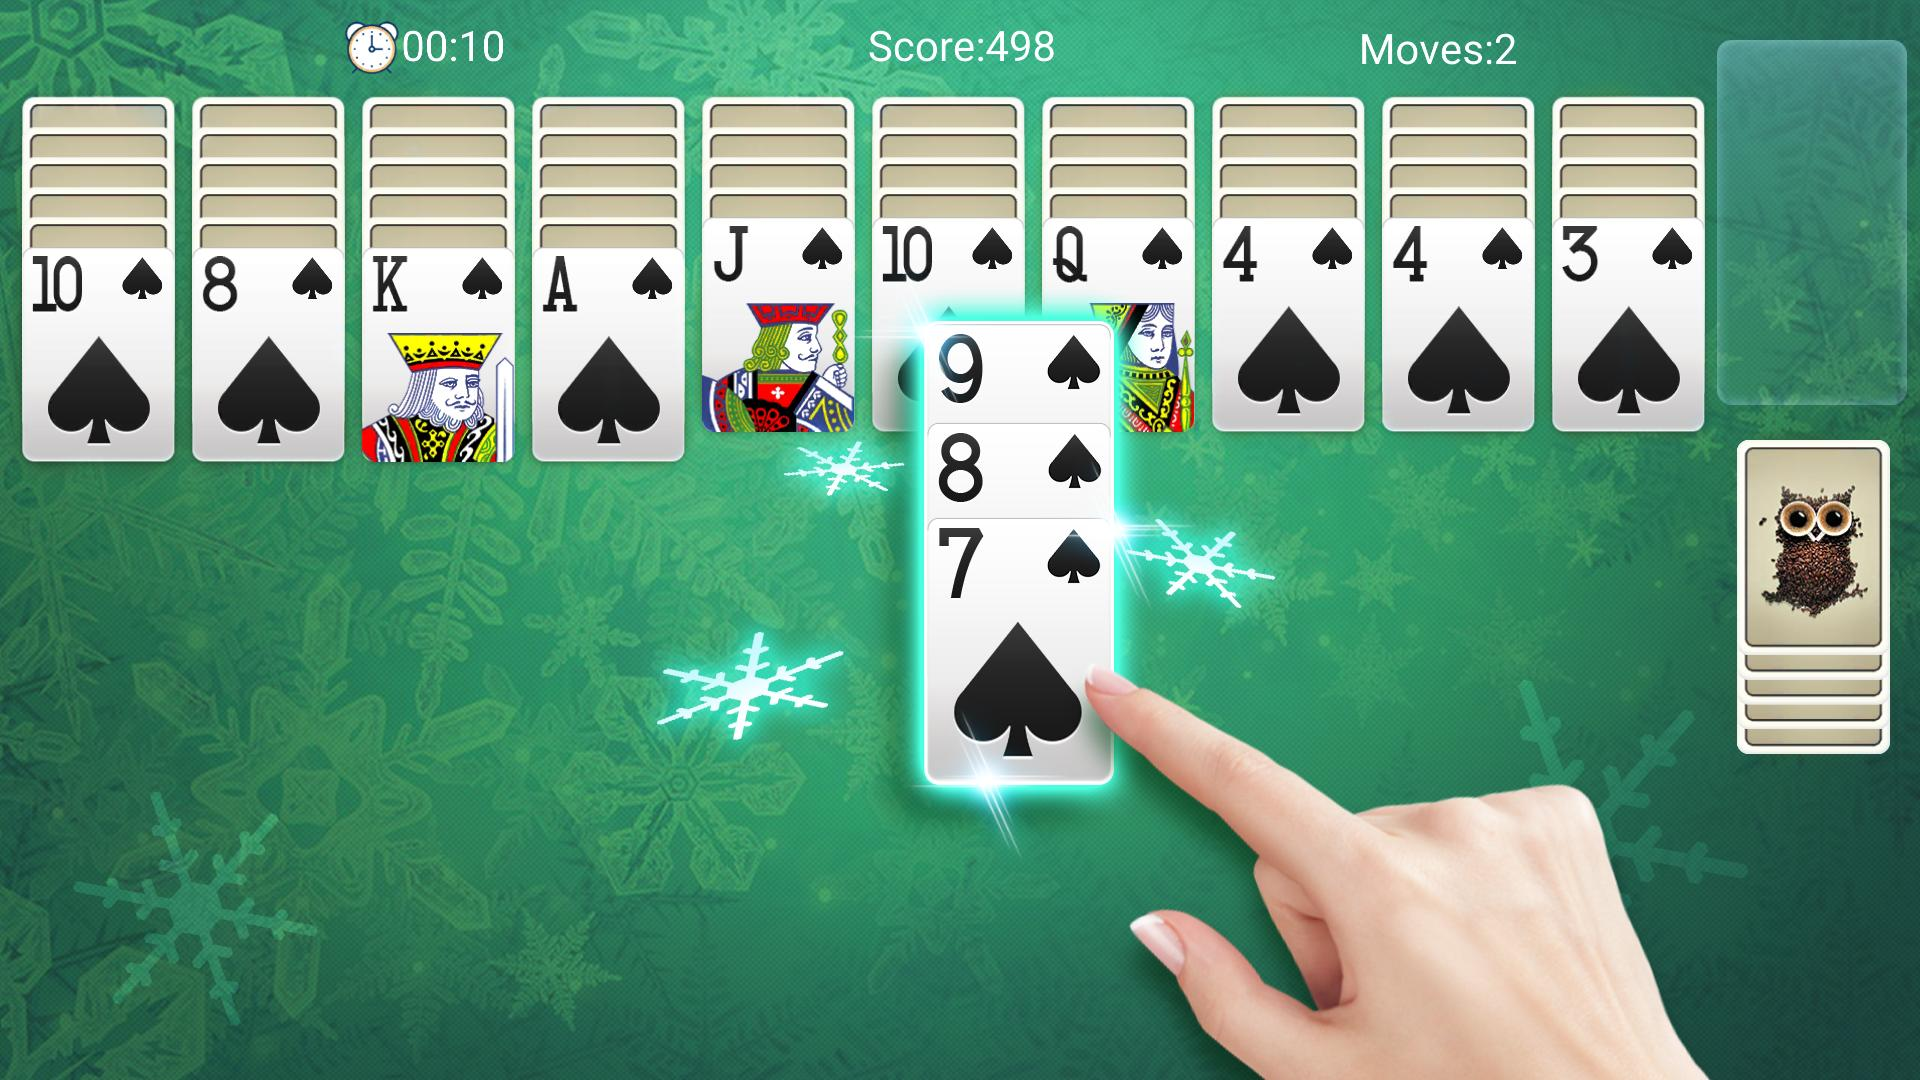 Classic Spider Solitaire-Free Solitaire Card Games 1.8.1 Screenshot 5